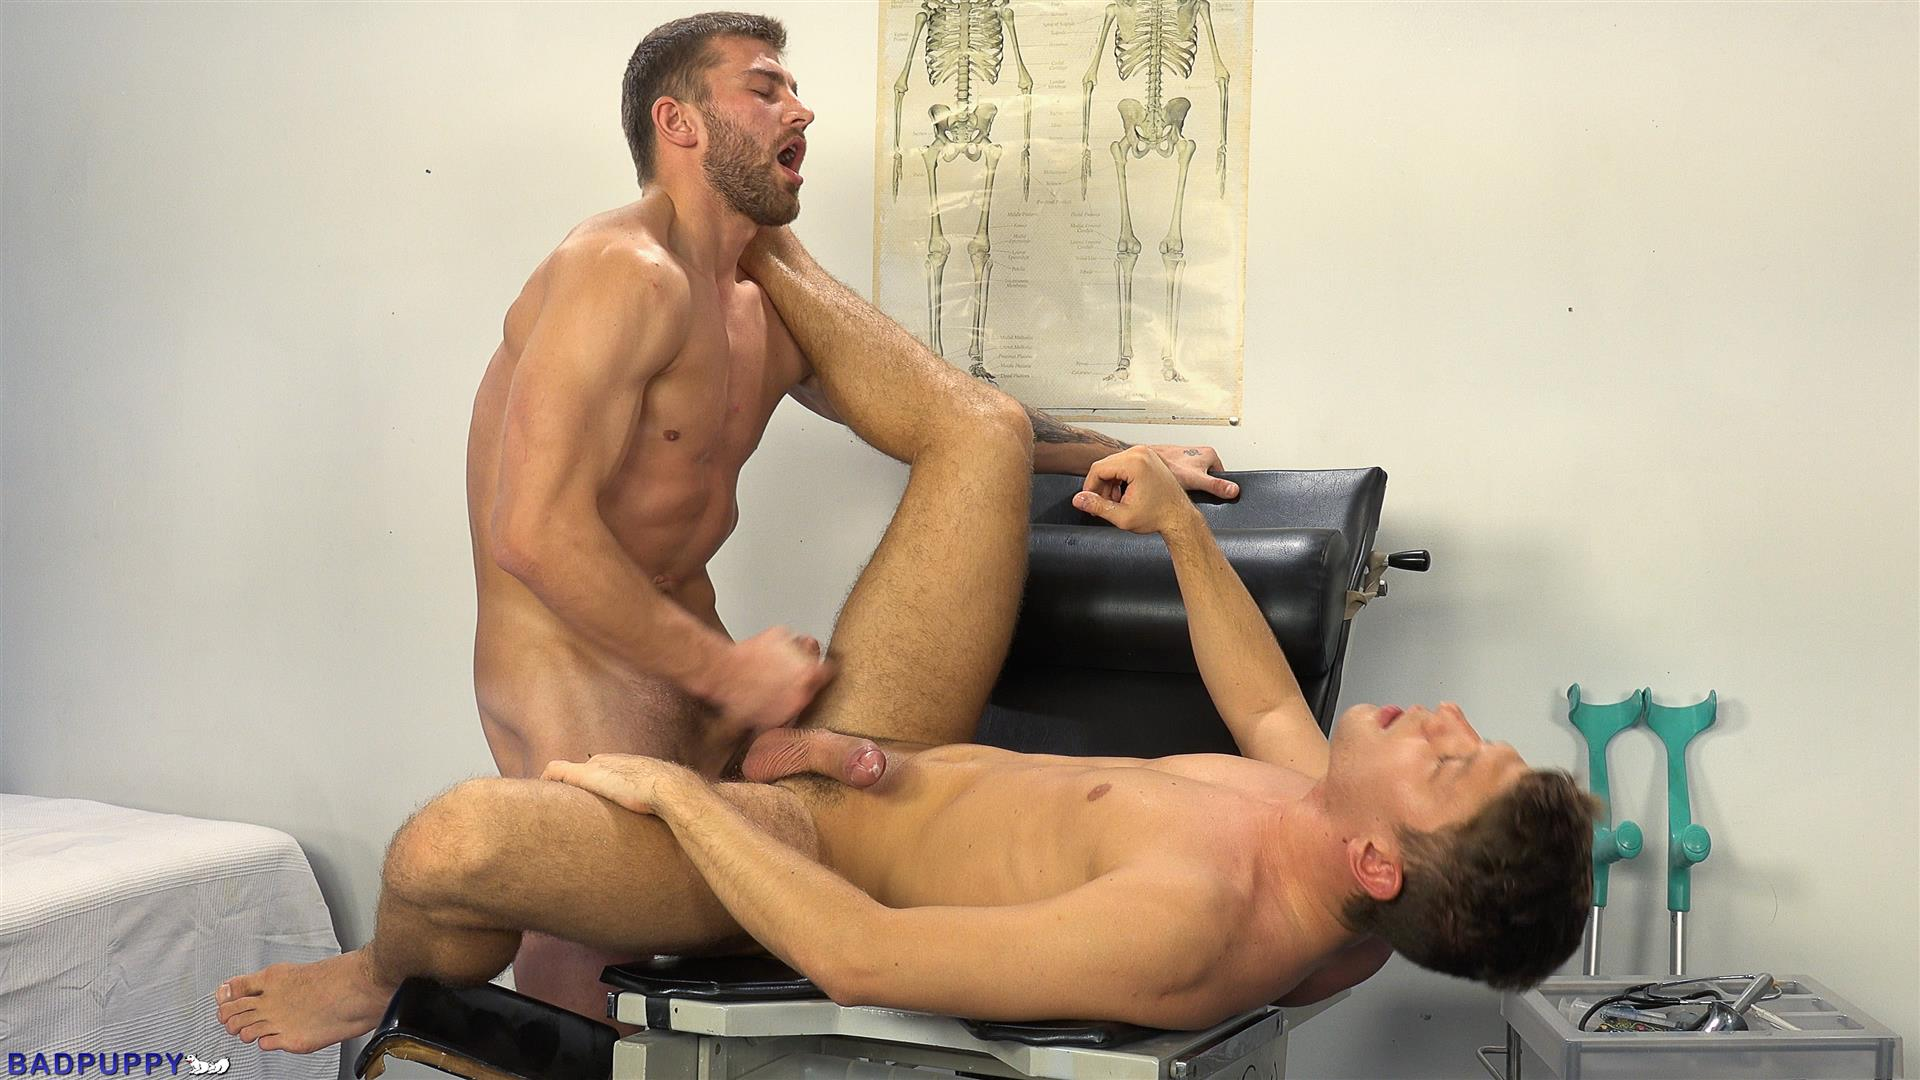 Badpuppy Nikol Monak and Rosta Benecky Czech Guys Fucking Bareback Amateur Gay Porn 31 Czech Hunks With Big Uncut Cocks Fucking At The Doctors Office